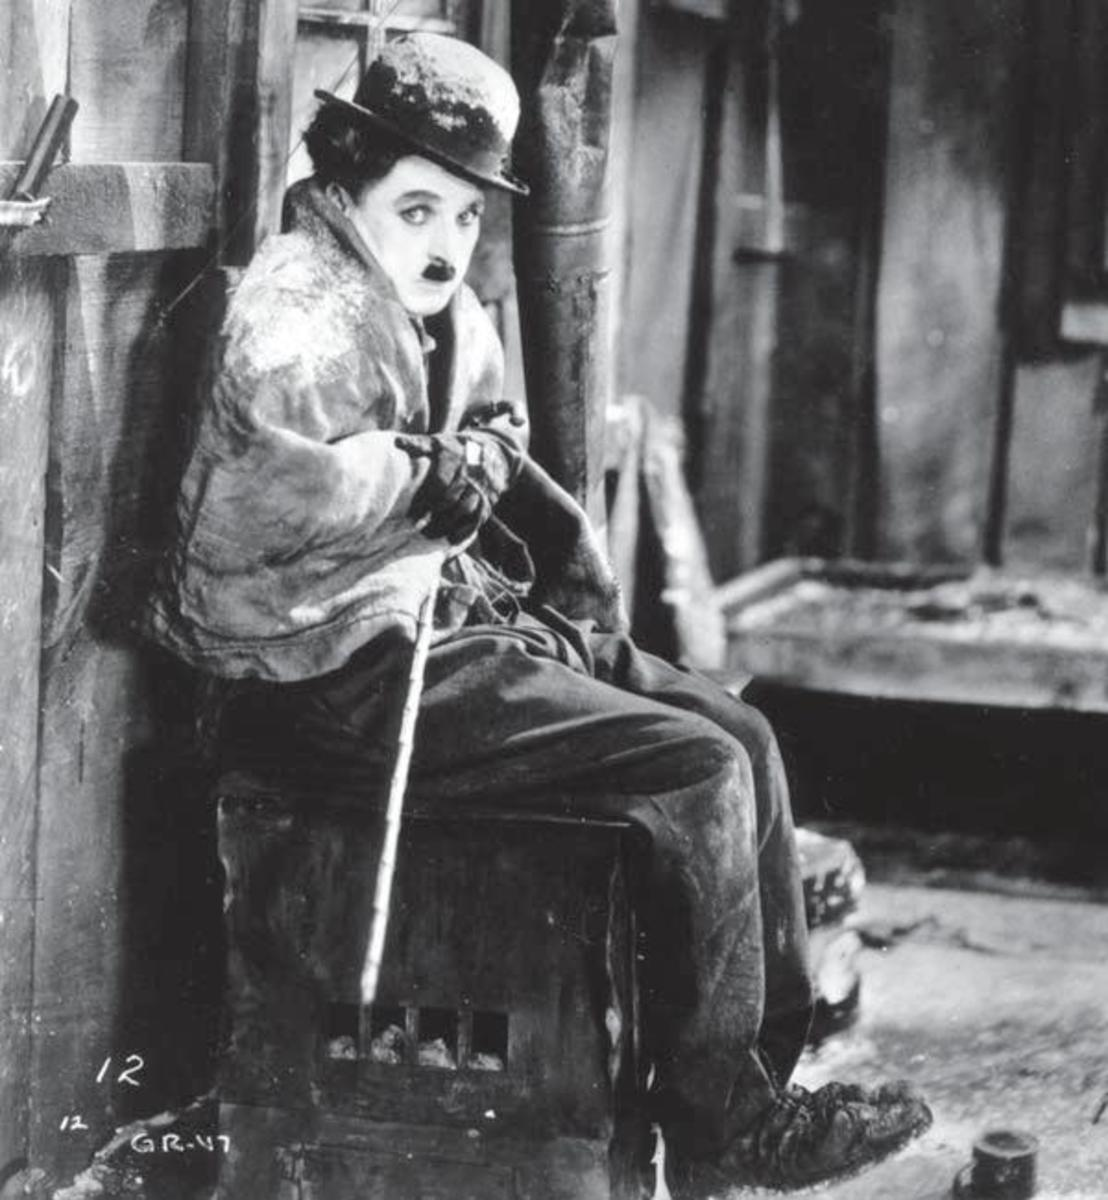 Charlie Chaplin as The Lone Prospector in The Gold Rush, written by Charlie Chaplin.